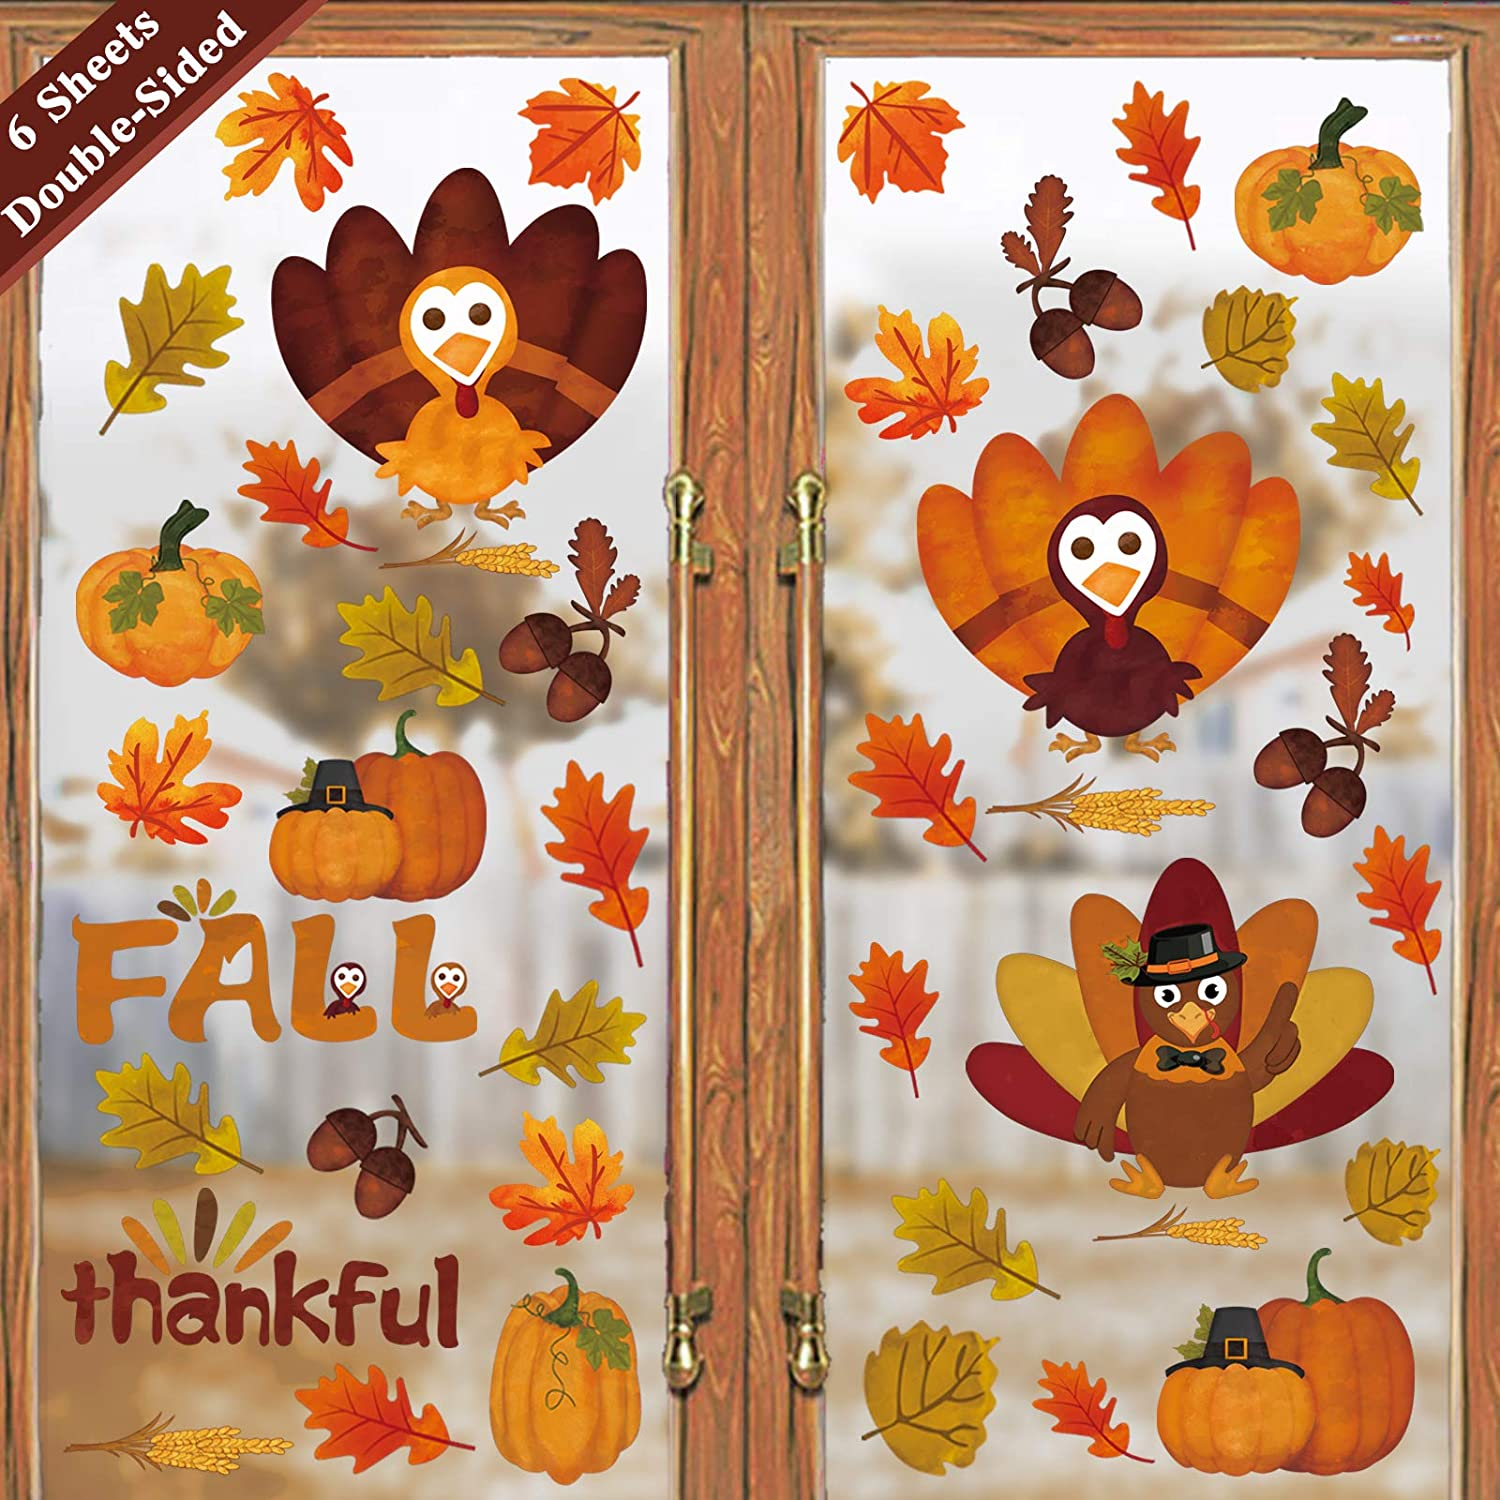 Ivenf Thanksgiving Decorations Window Clings Decor, Extra Large Autumn Fall Leaves Turkey Pumpkin Decal, Kids School Home Office Party Supplies Gifts, 6 Sheet 80 pcs